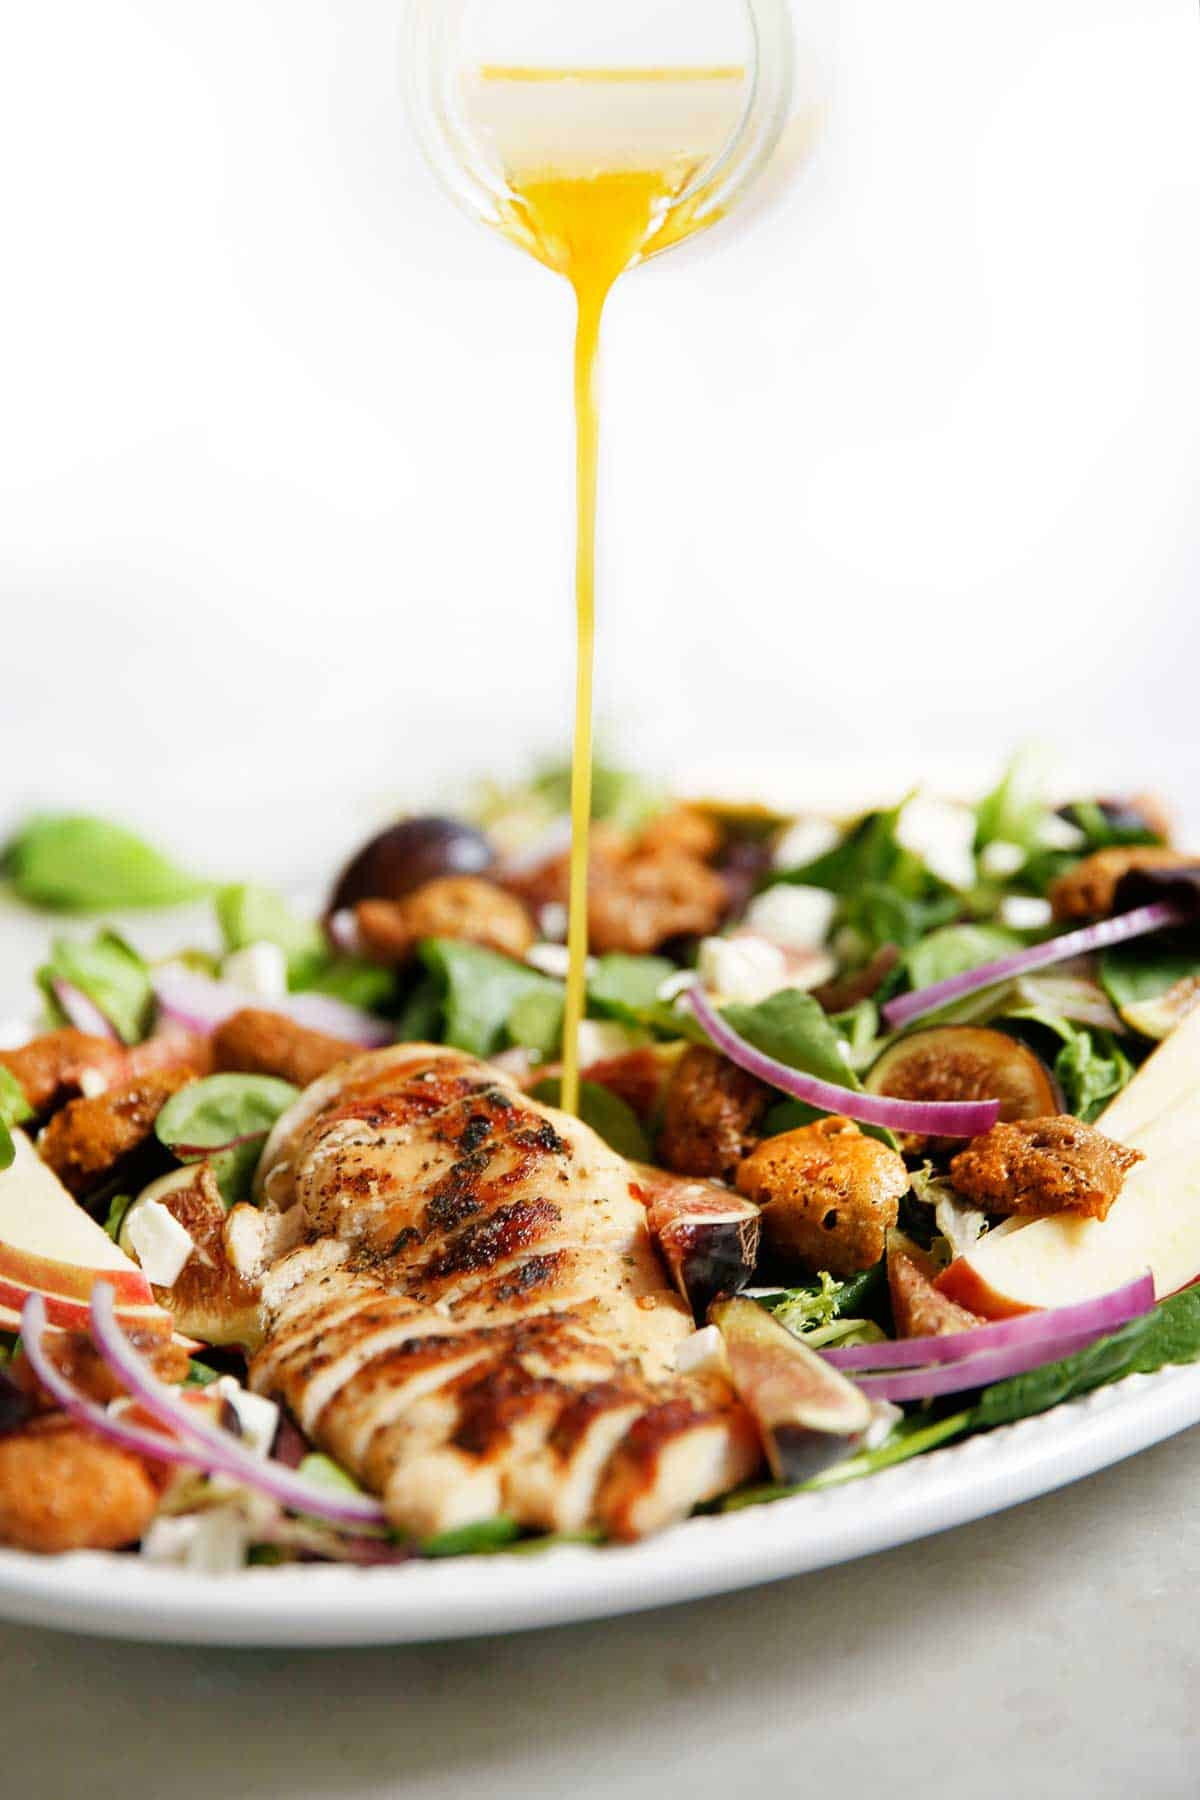 Herb Chicken Candied Pecan Salad | Lexi's Clean Kitchen